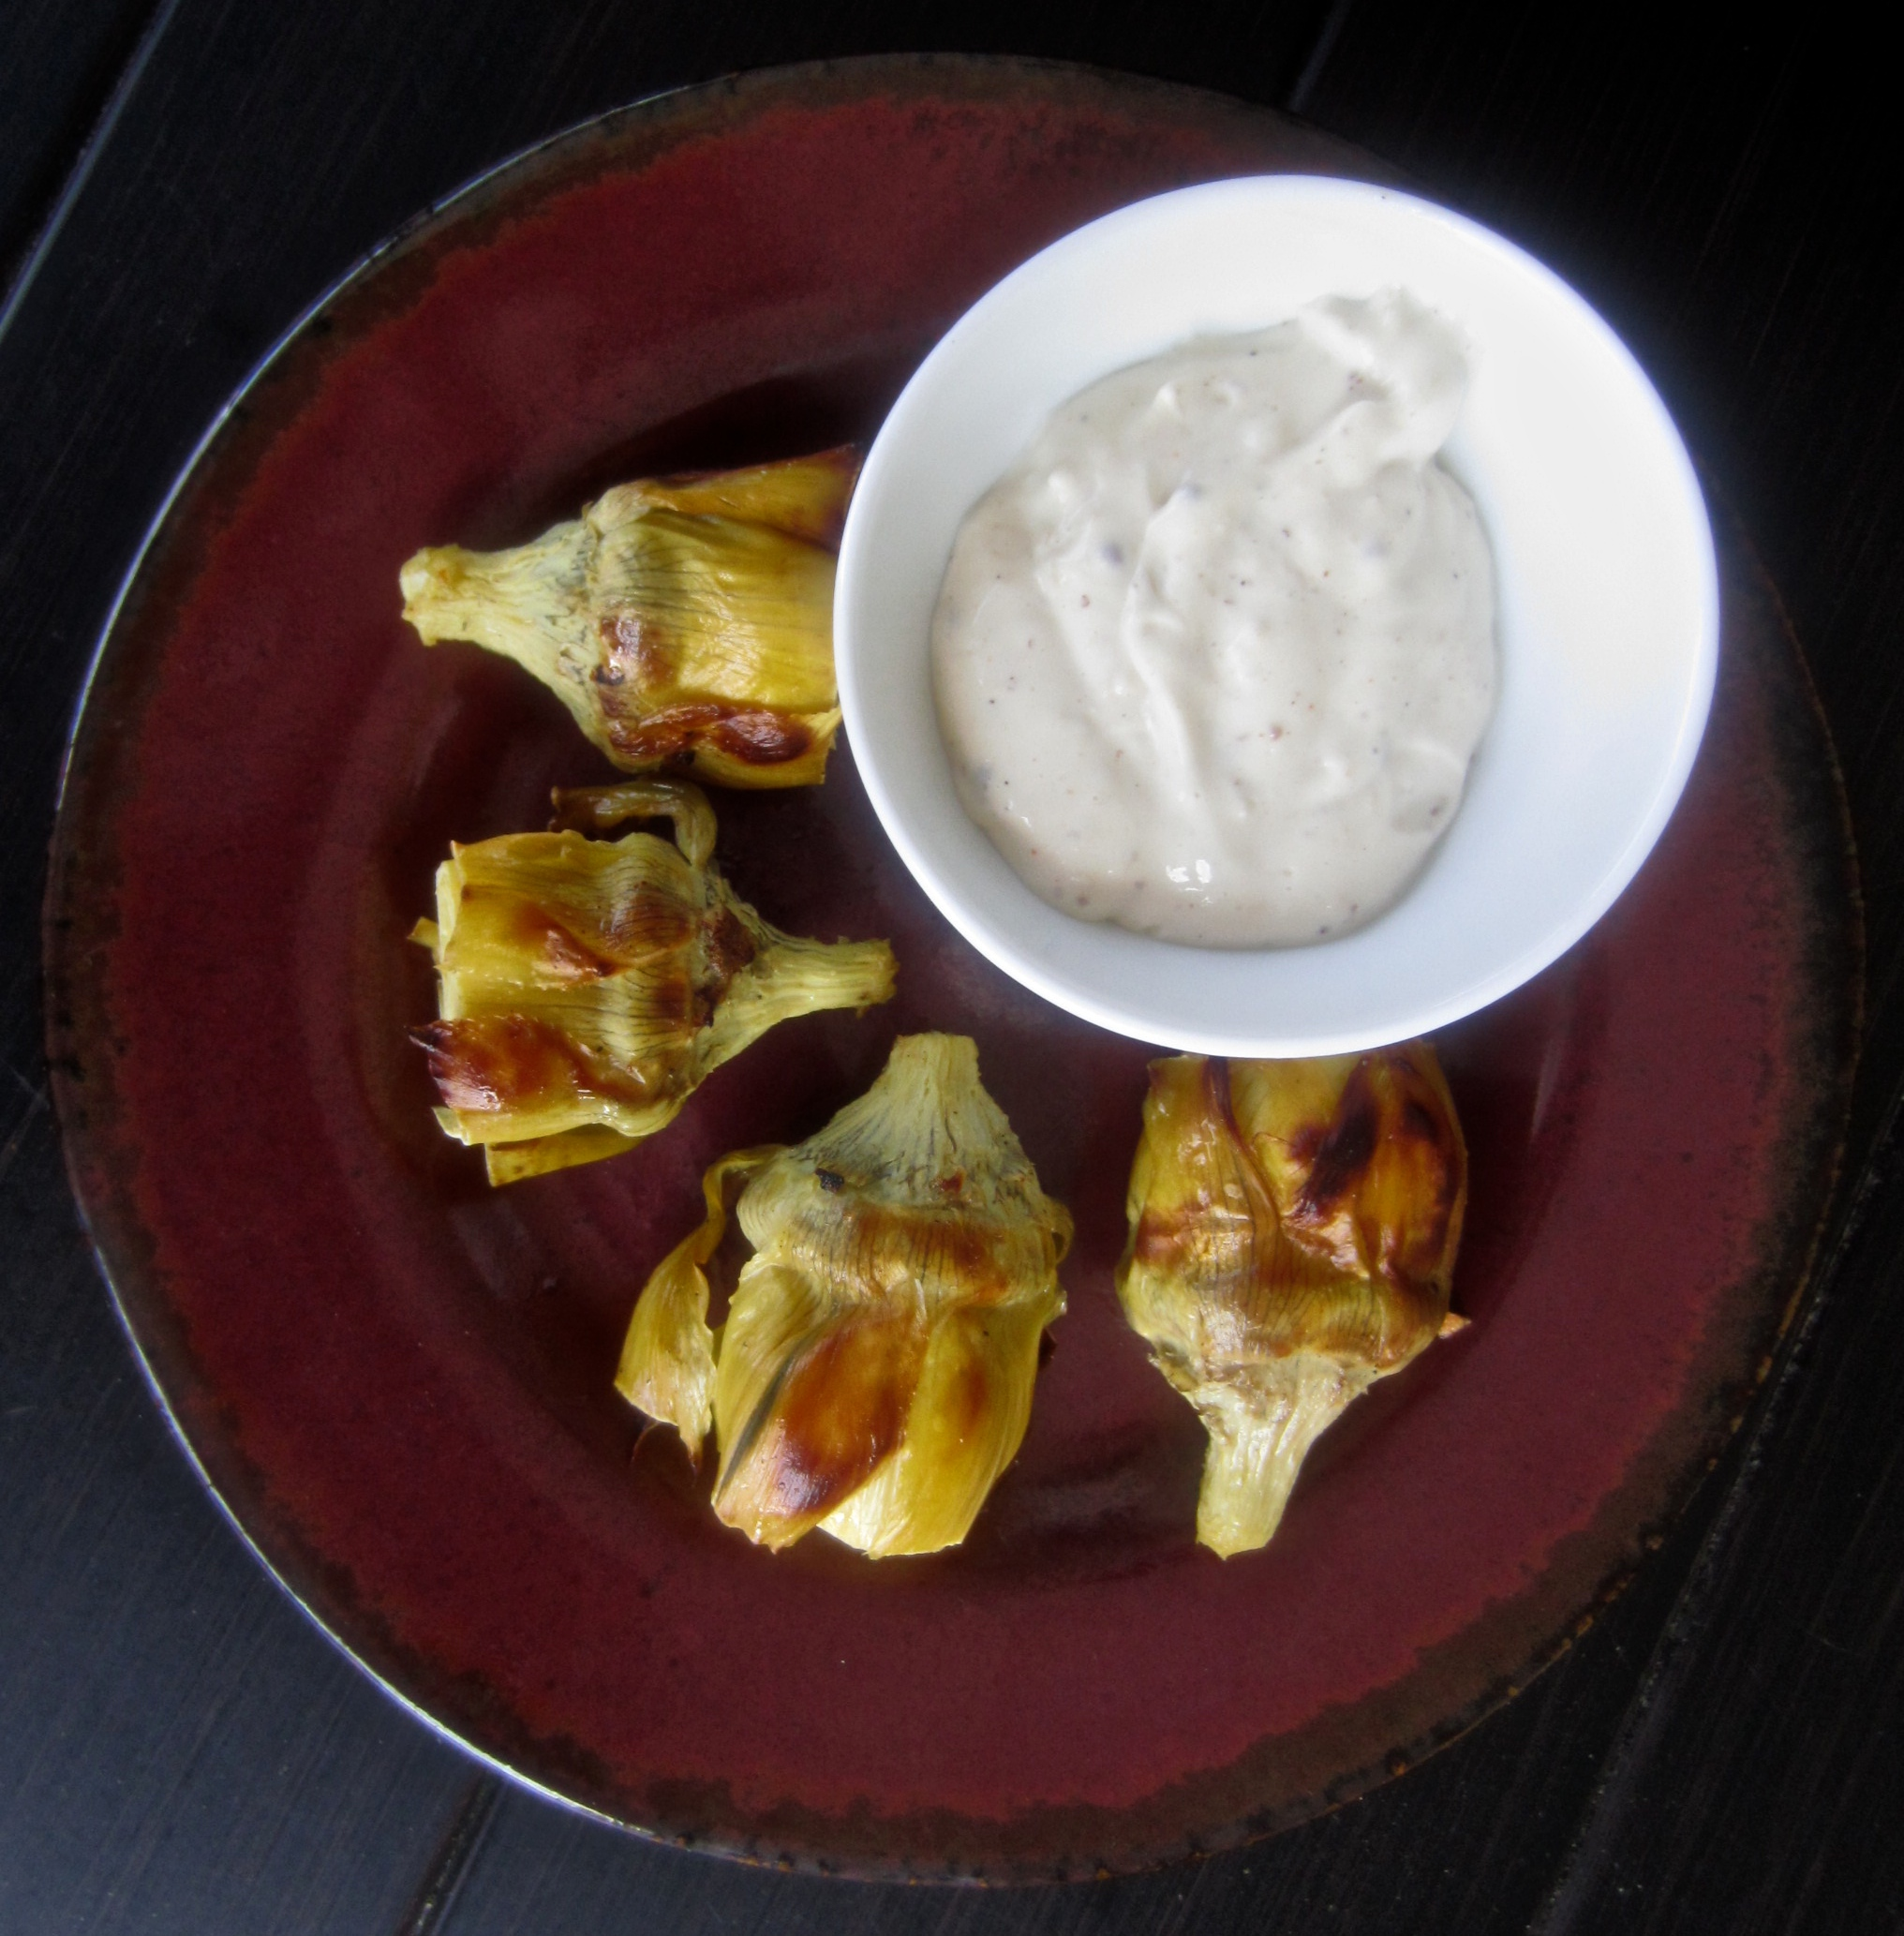 Roasted Artichoke Hearts with Horseradish Dip | Spoonful of Sugar Free